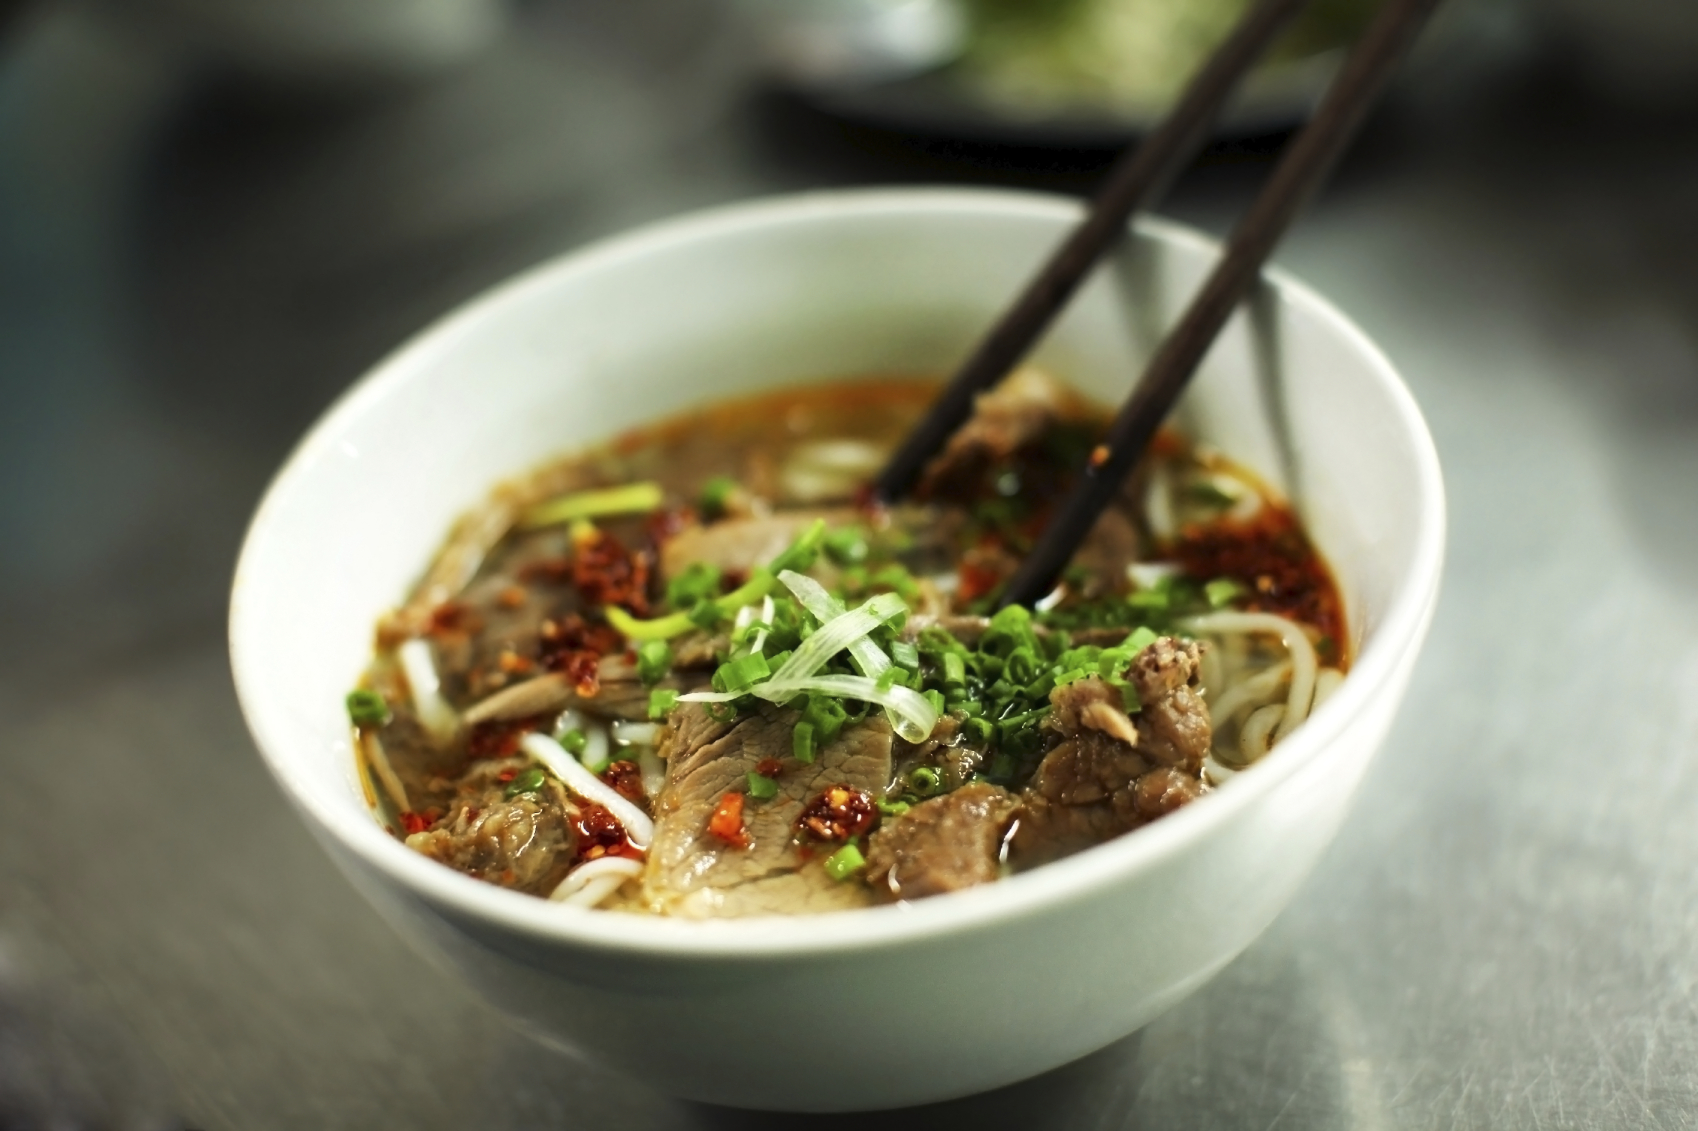 Pho - Vietnamese traditional noodle soup